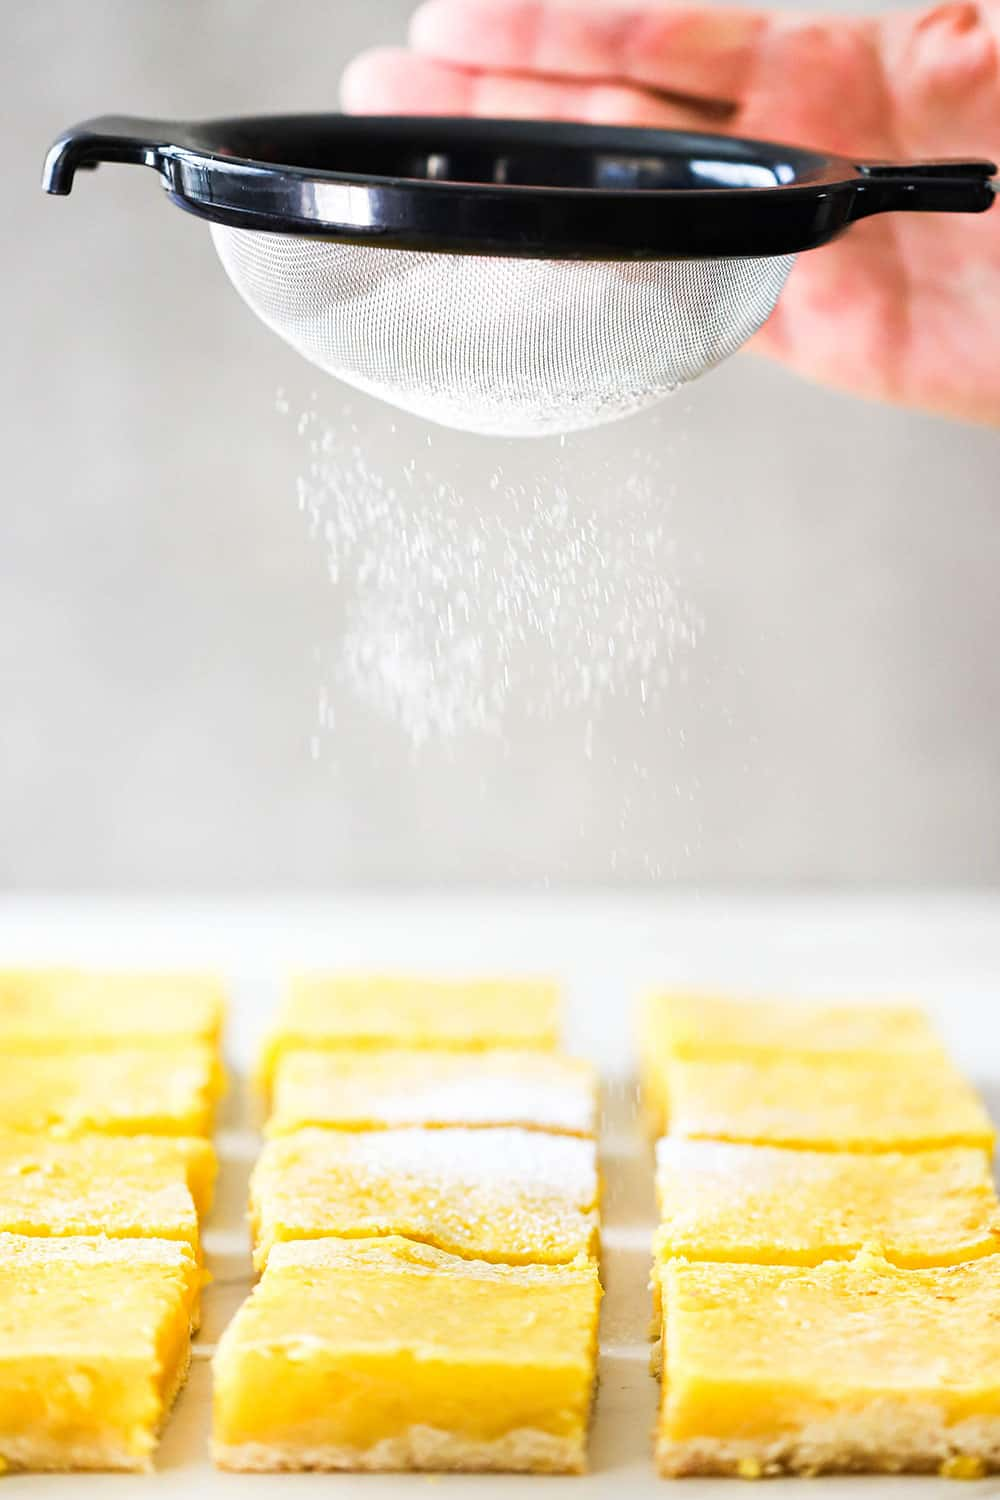 A hand using a small sieve to sprinkle powdered sugar over the tops of cut lemon bars.